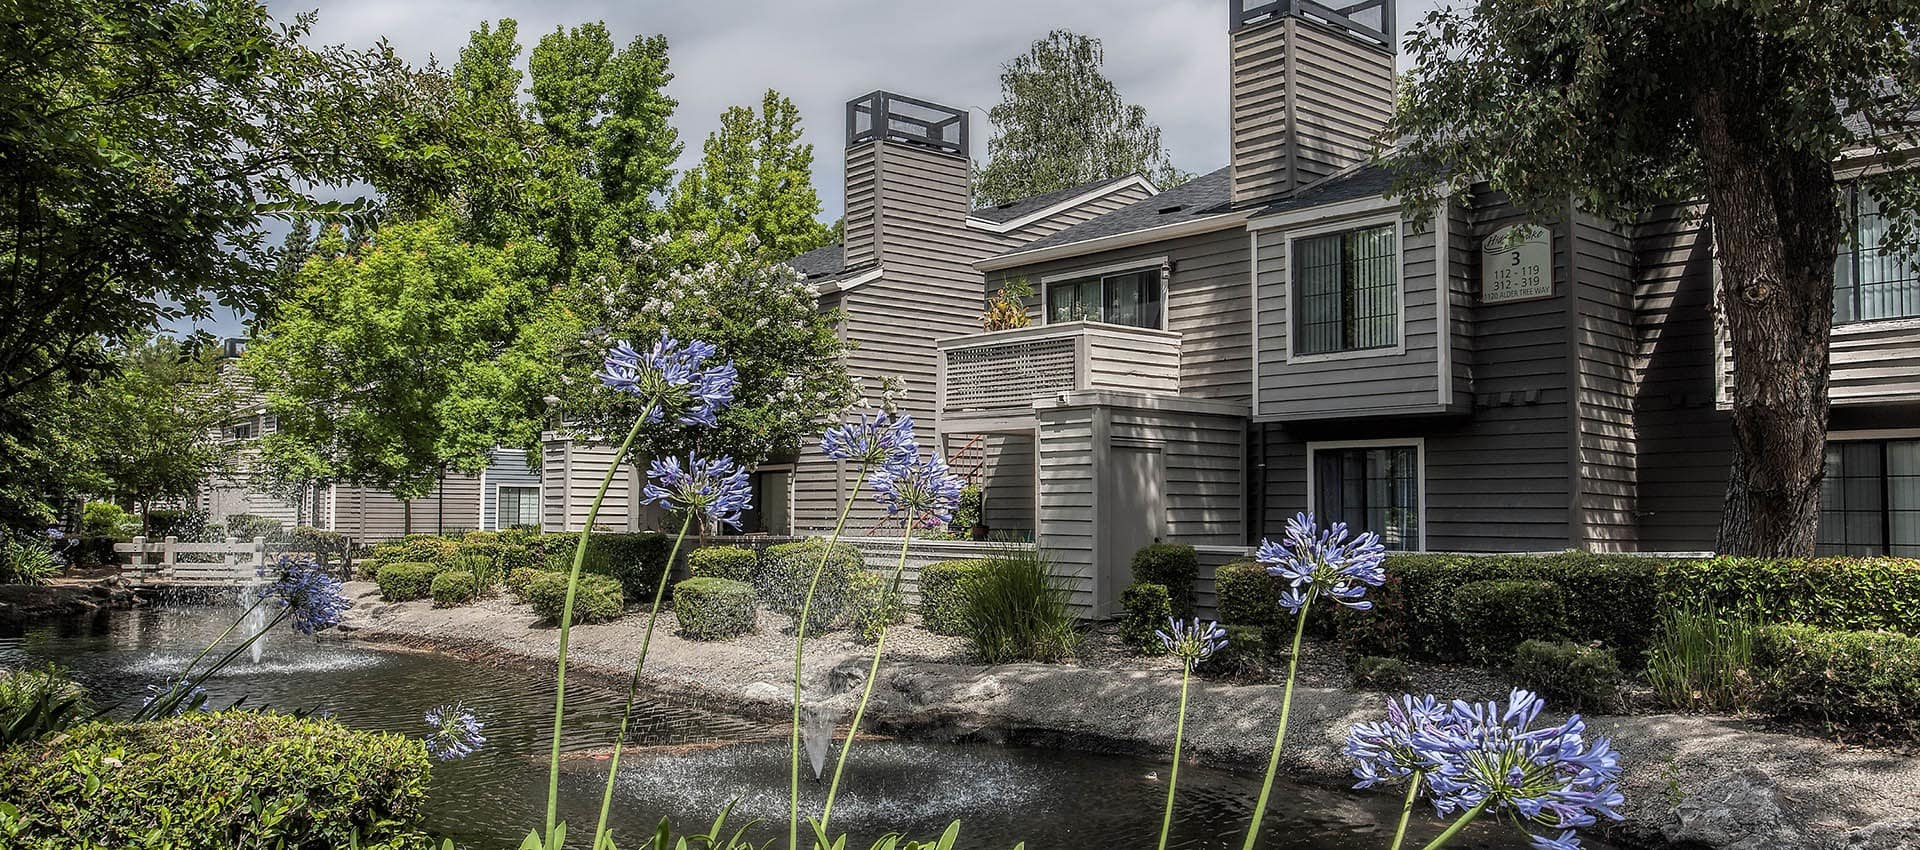 Water Feature And Landscaping at Hidden Lake Condominium Rentals in Sacramento, California